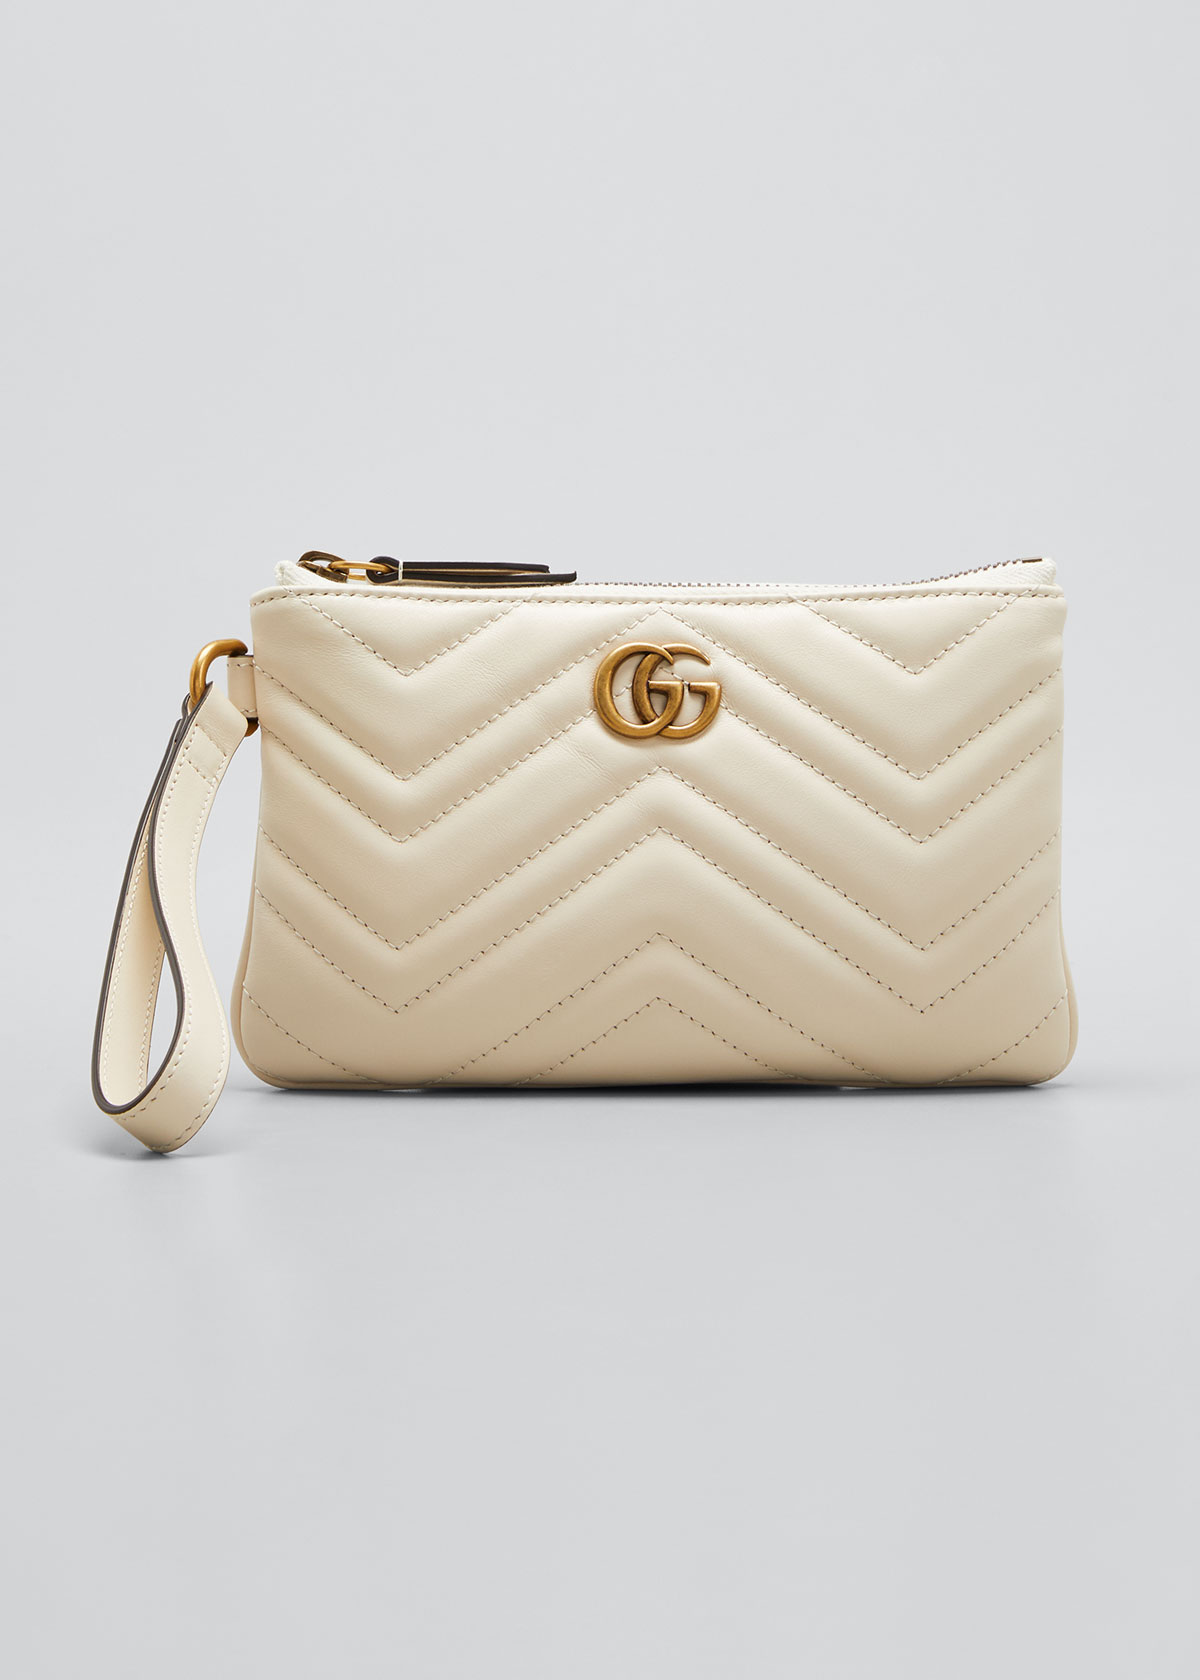 Gucci Cardholders GG MARMONT QUILTED WRIST WALLET